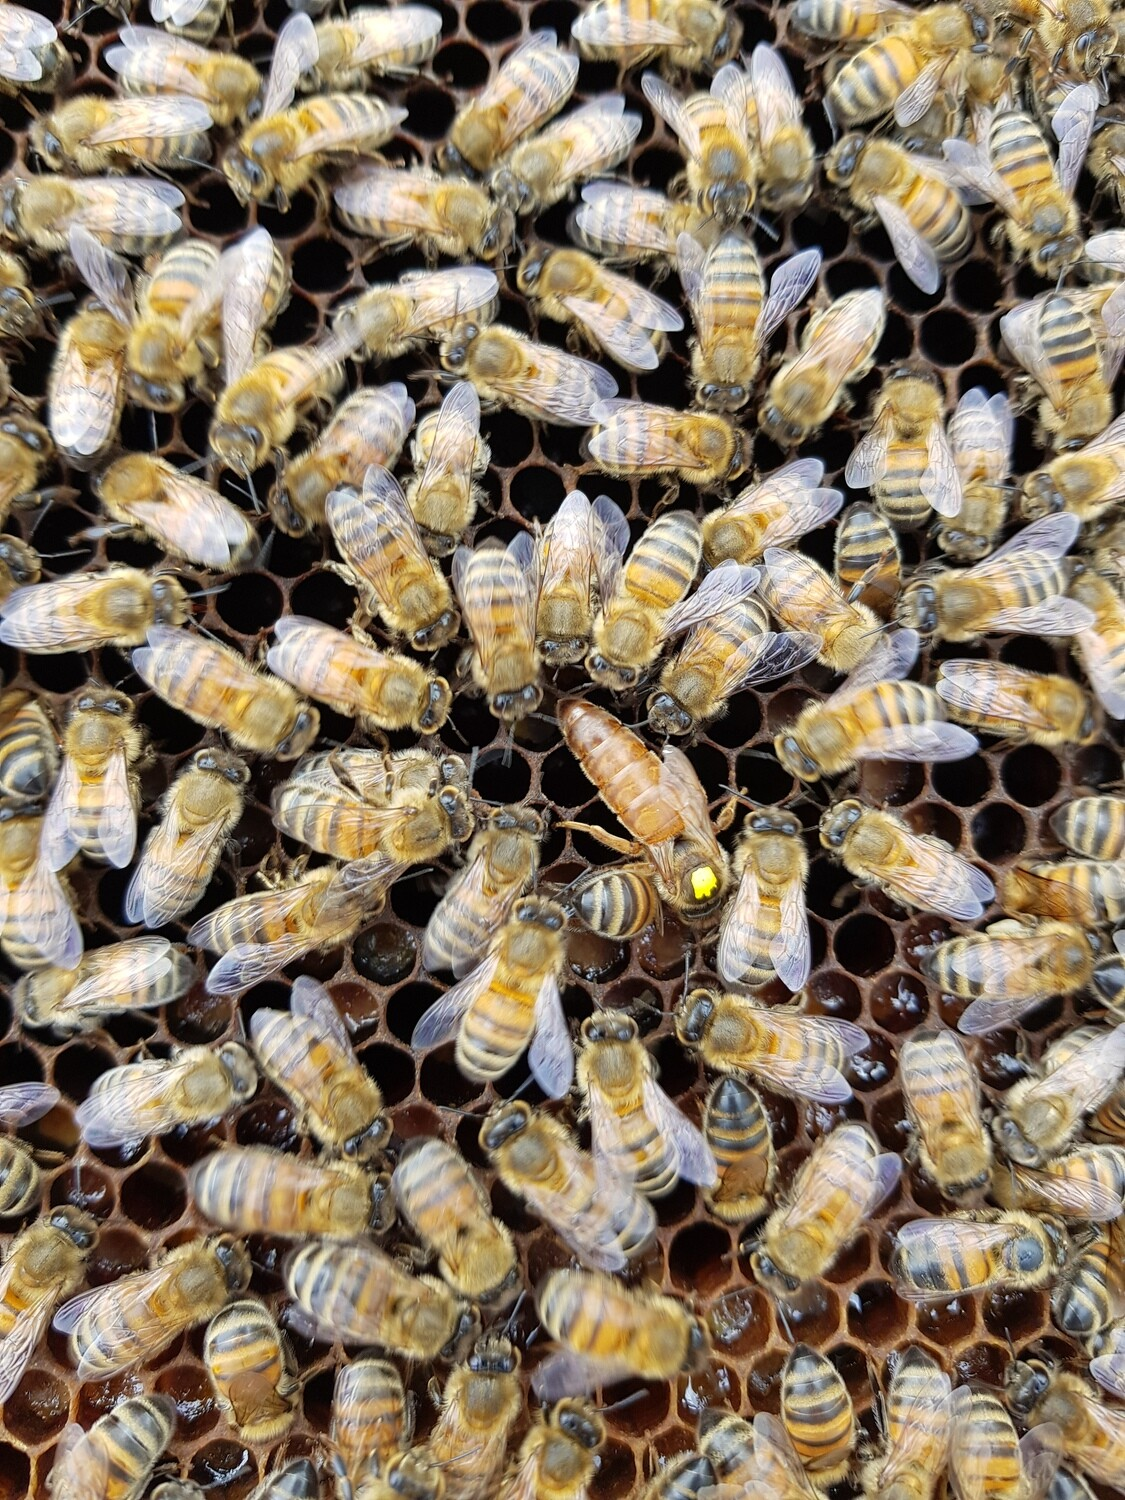 5 or 6 Frame National Nucleus hive : £50 Deposit - £180 Total - reared by us from our best stock - Available from June - Limited Stock